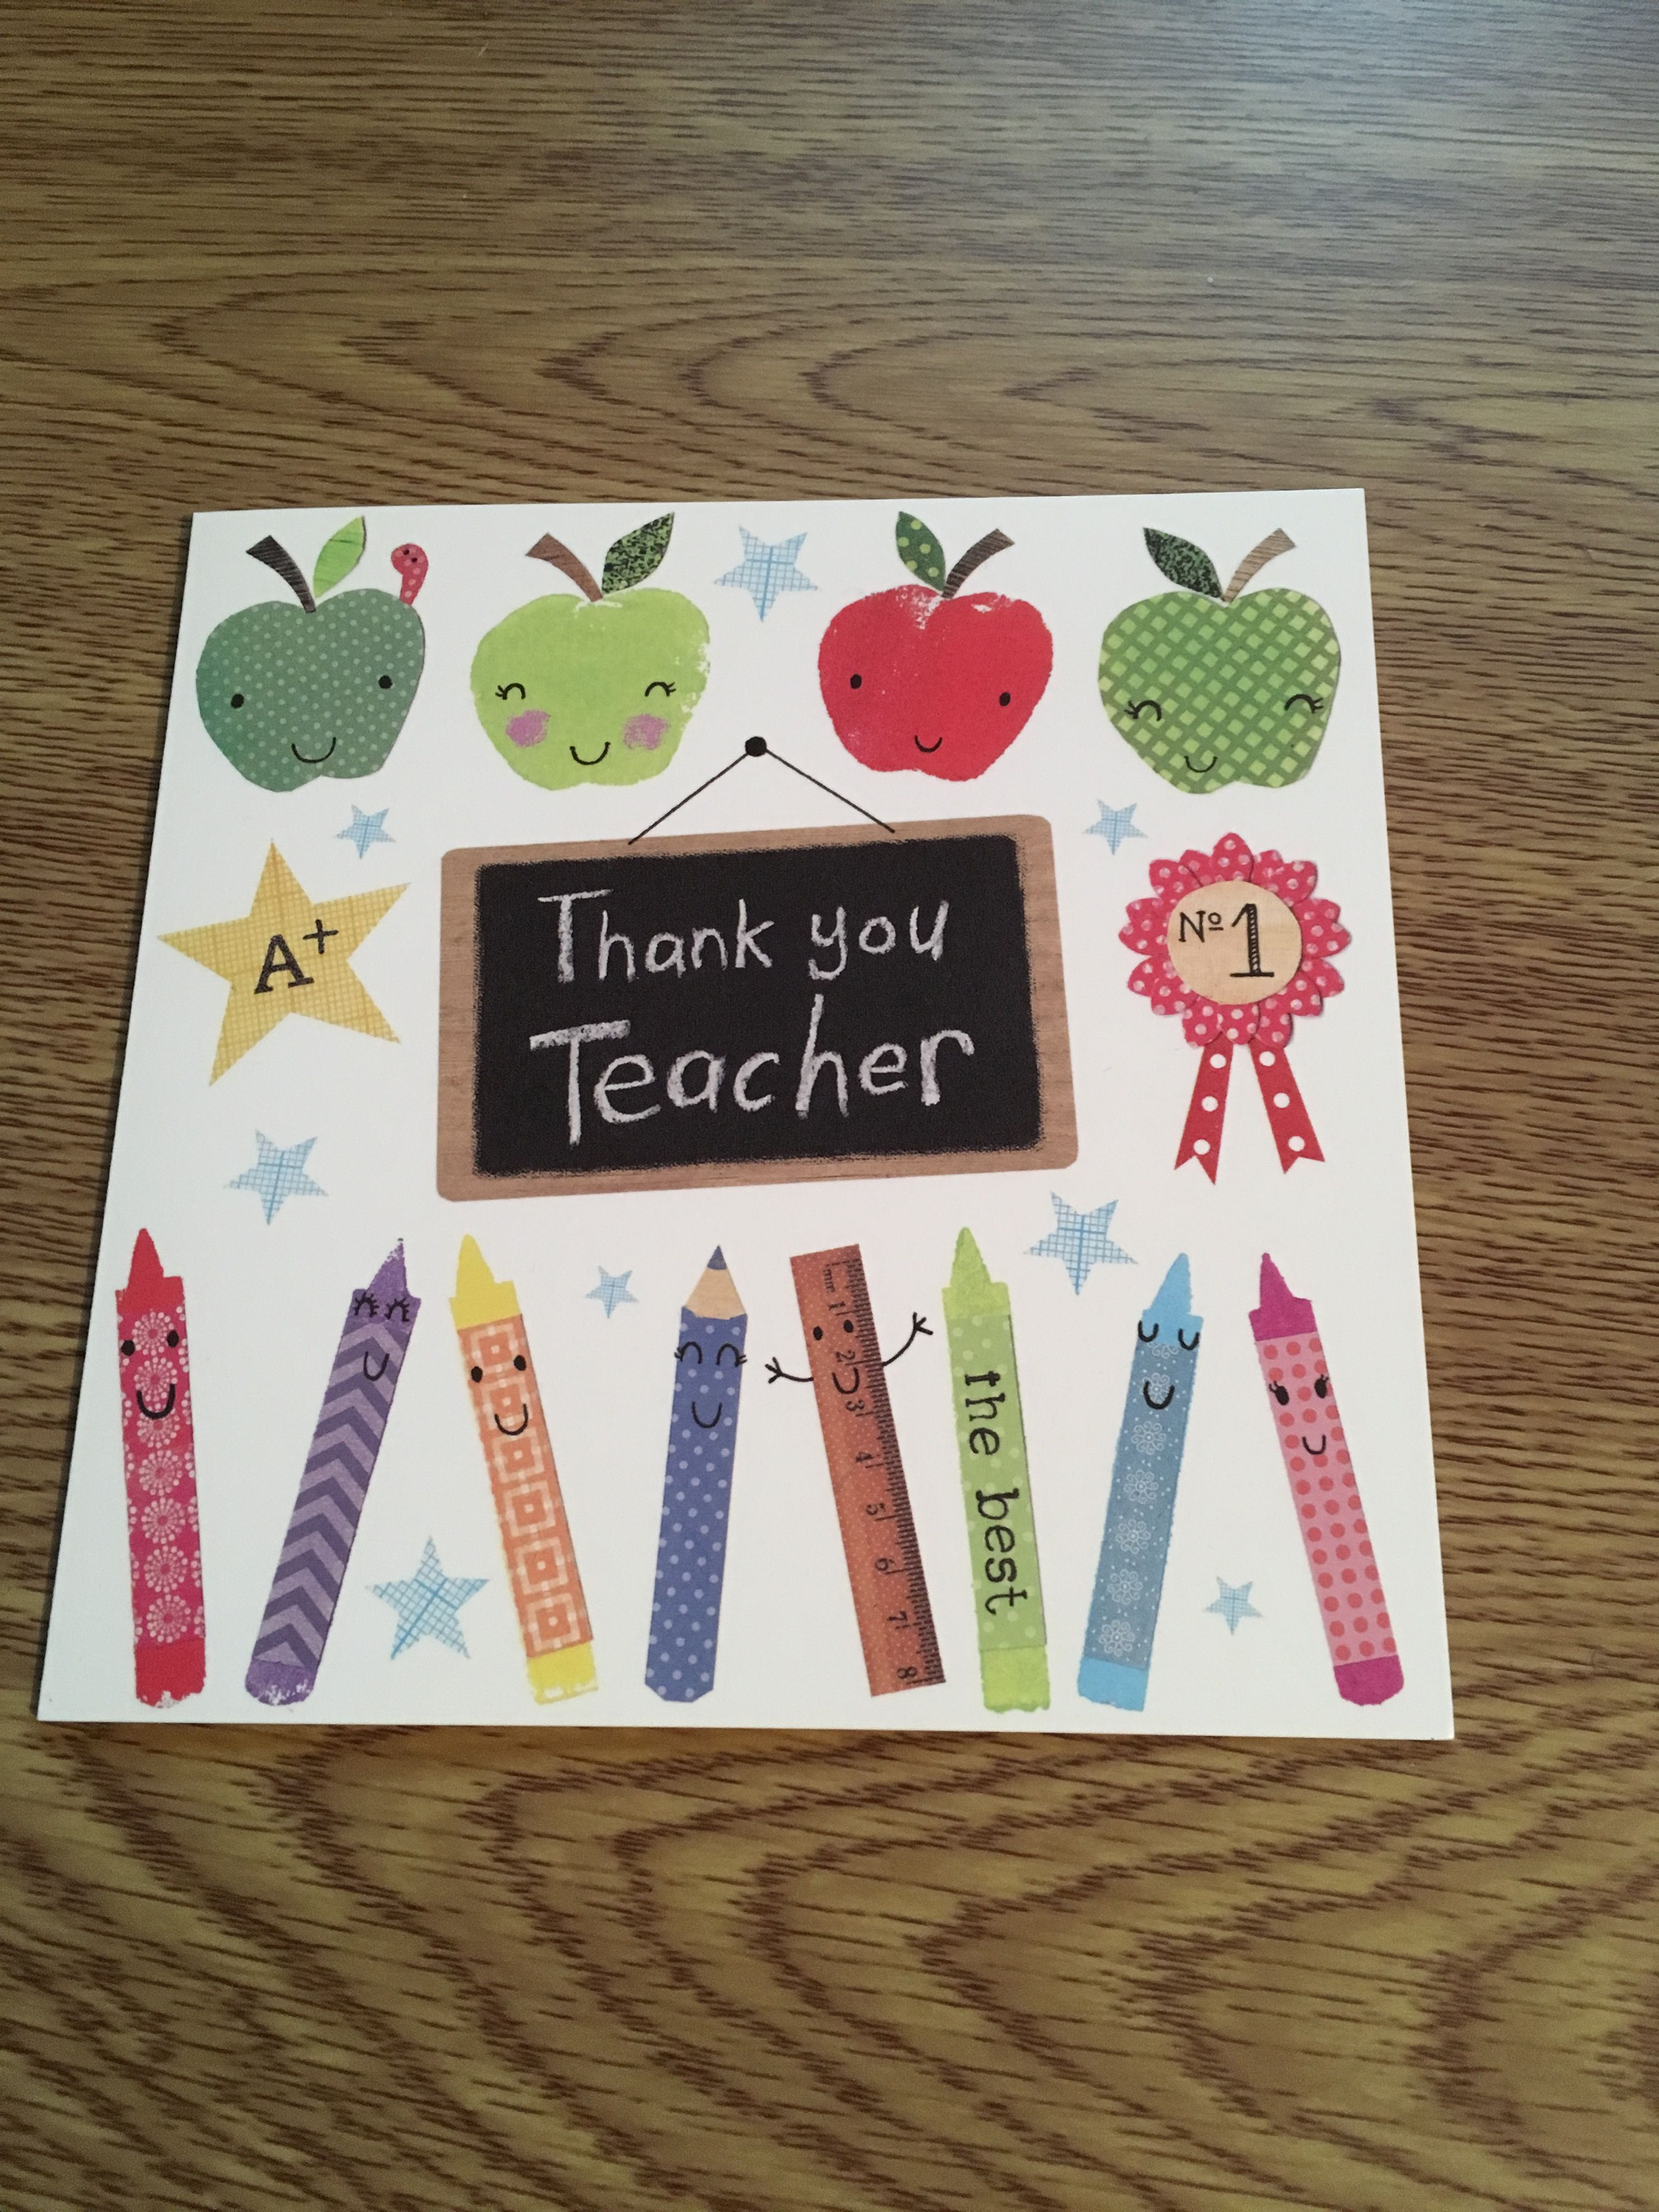 Thank You Teacher Cards Now In Stock Thankyou Cards Greetingcards